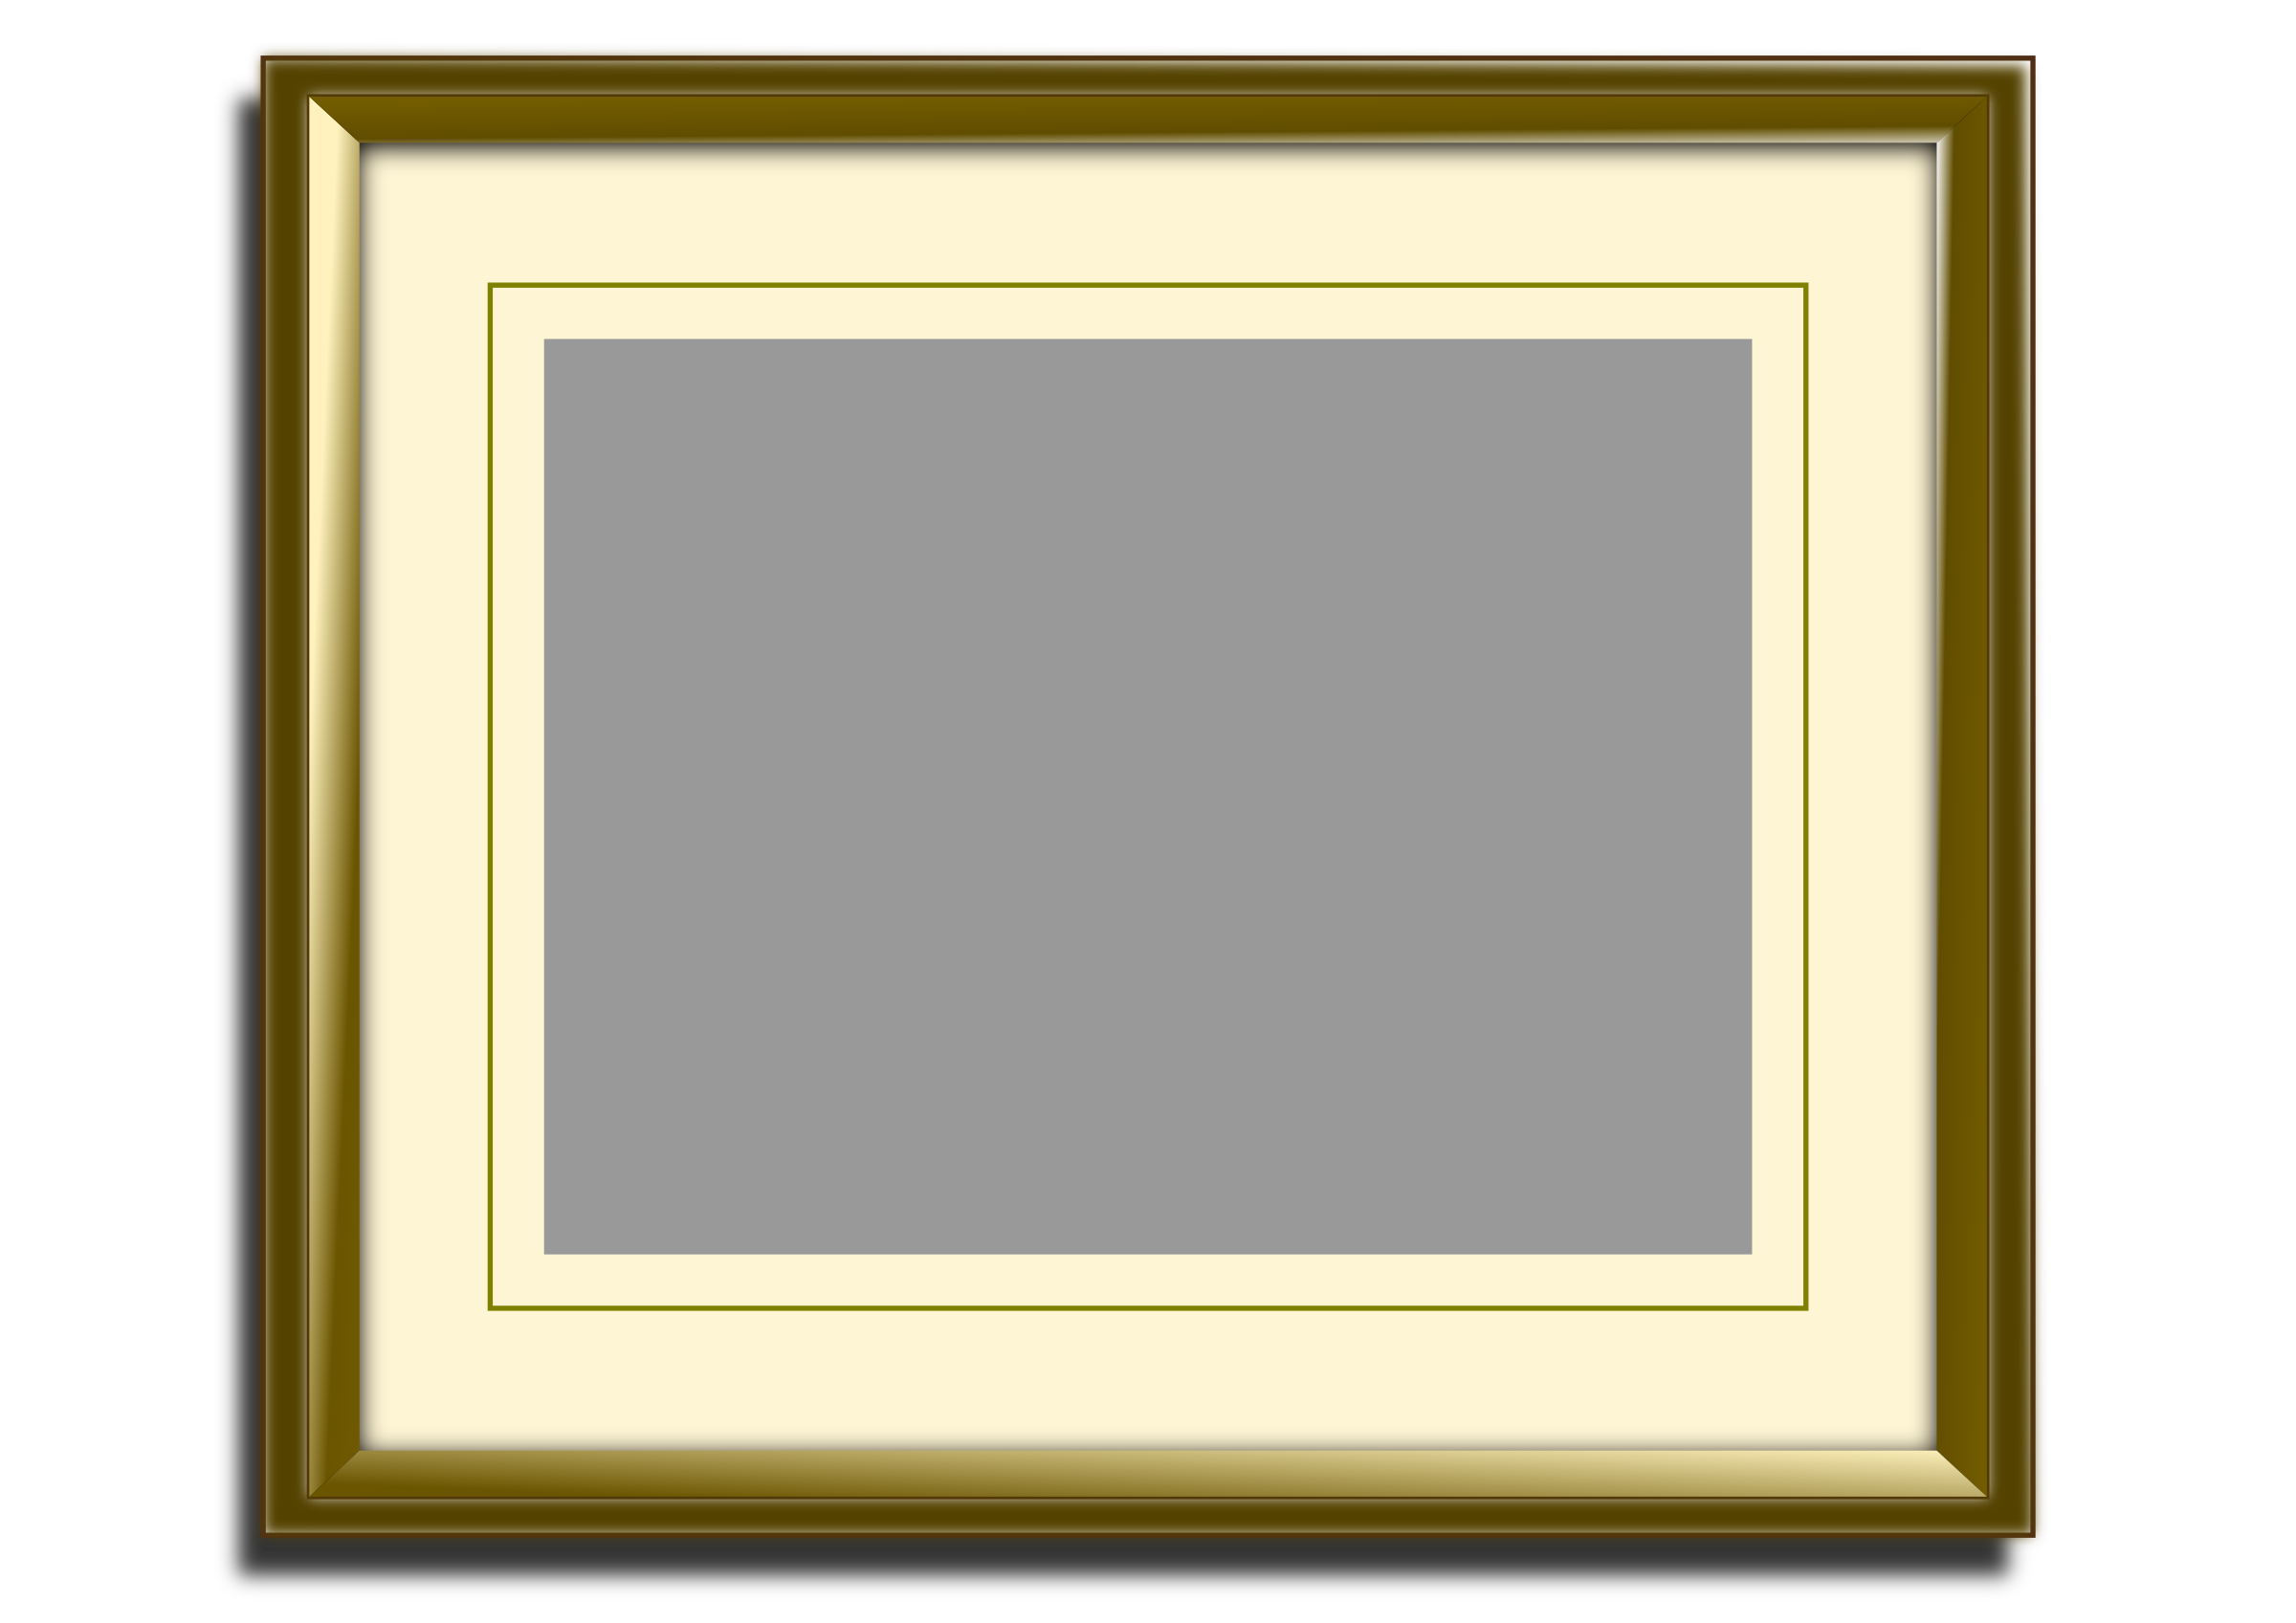 Hanging picture frame png. Golden icons free and